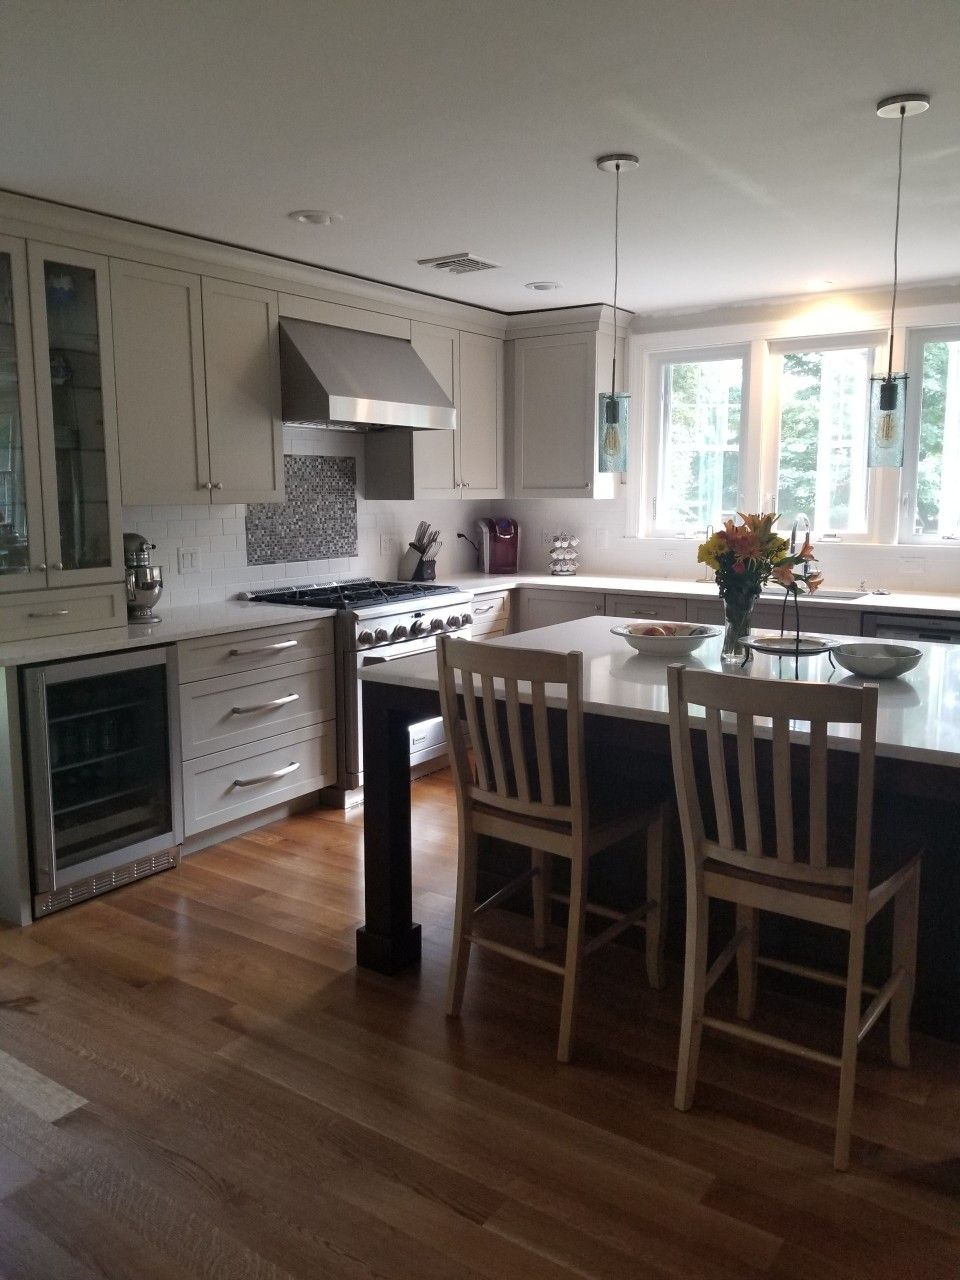 Best Our Remodeled Kitchen Light Gray Cabinets Stainless 640 x 480